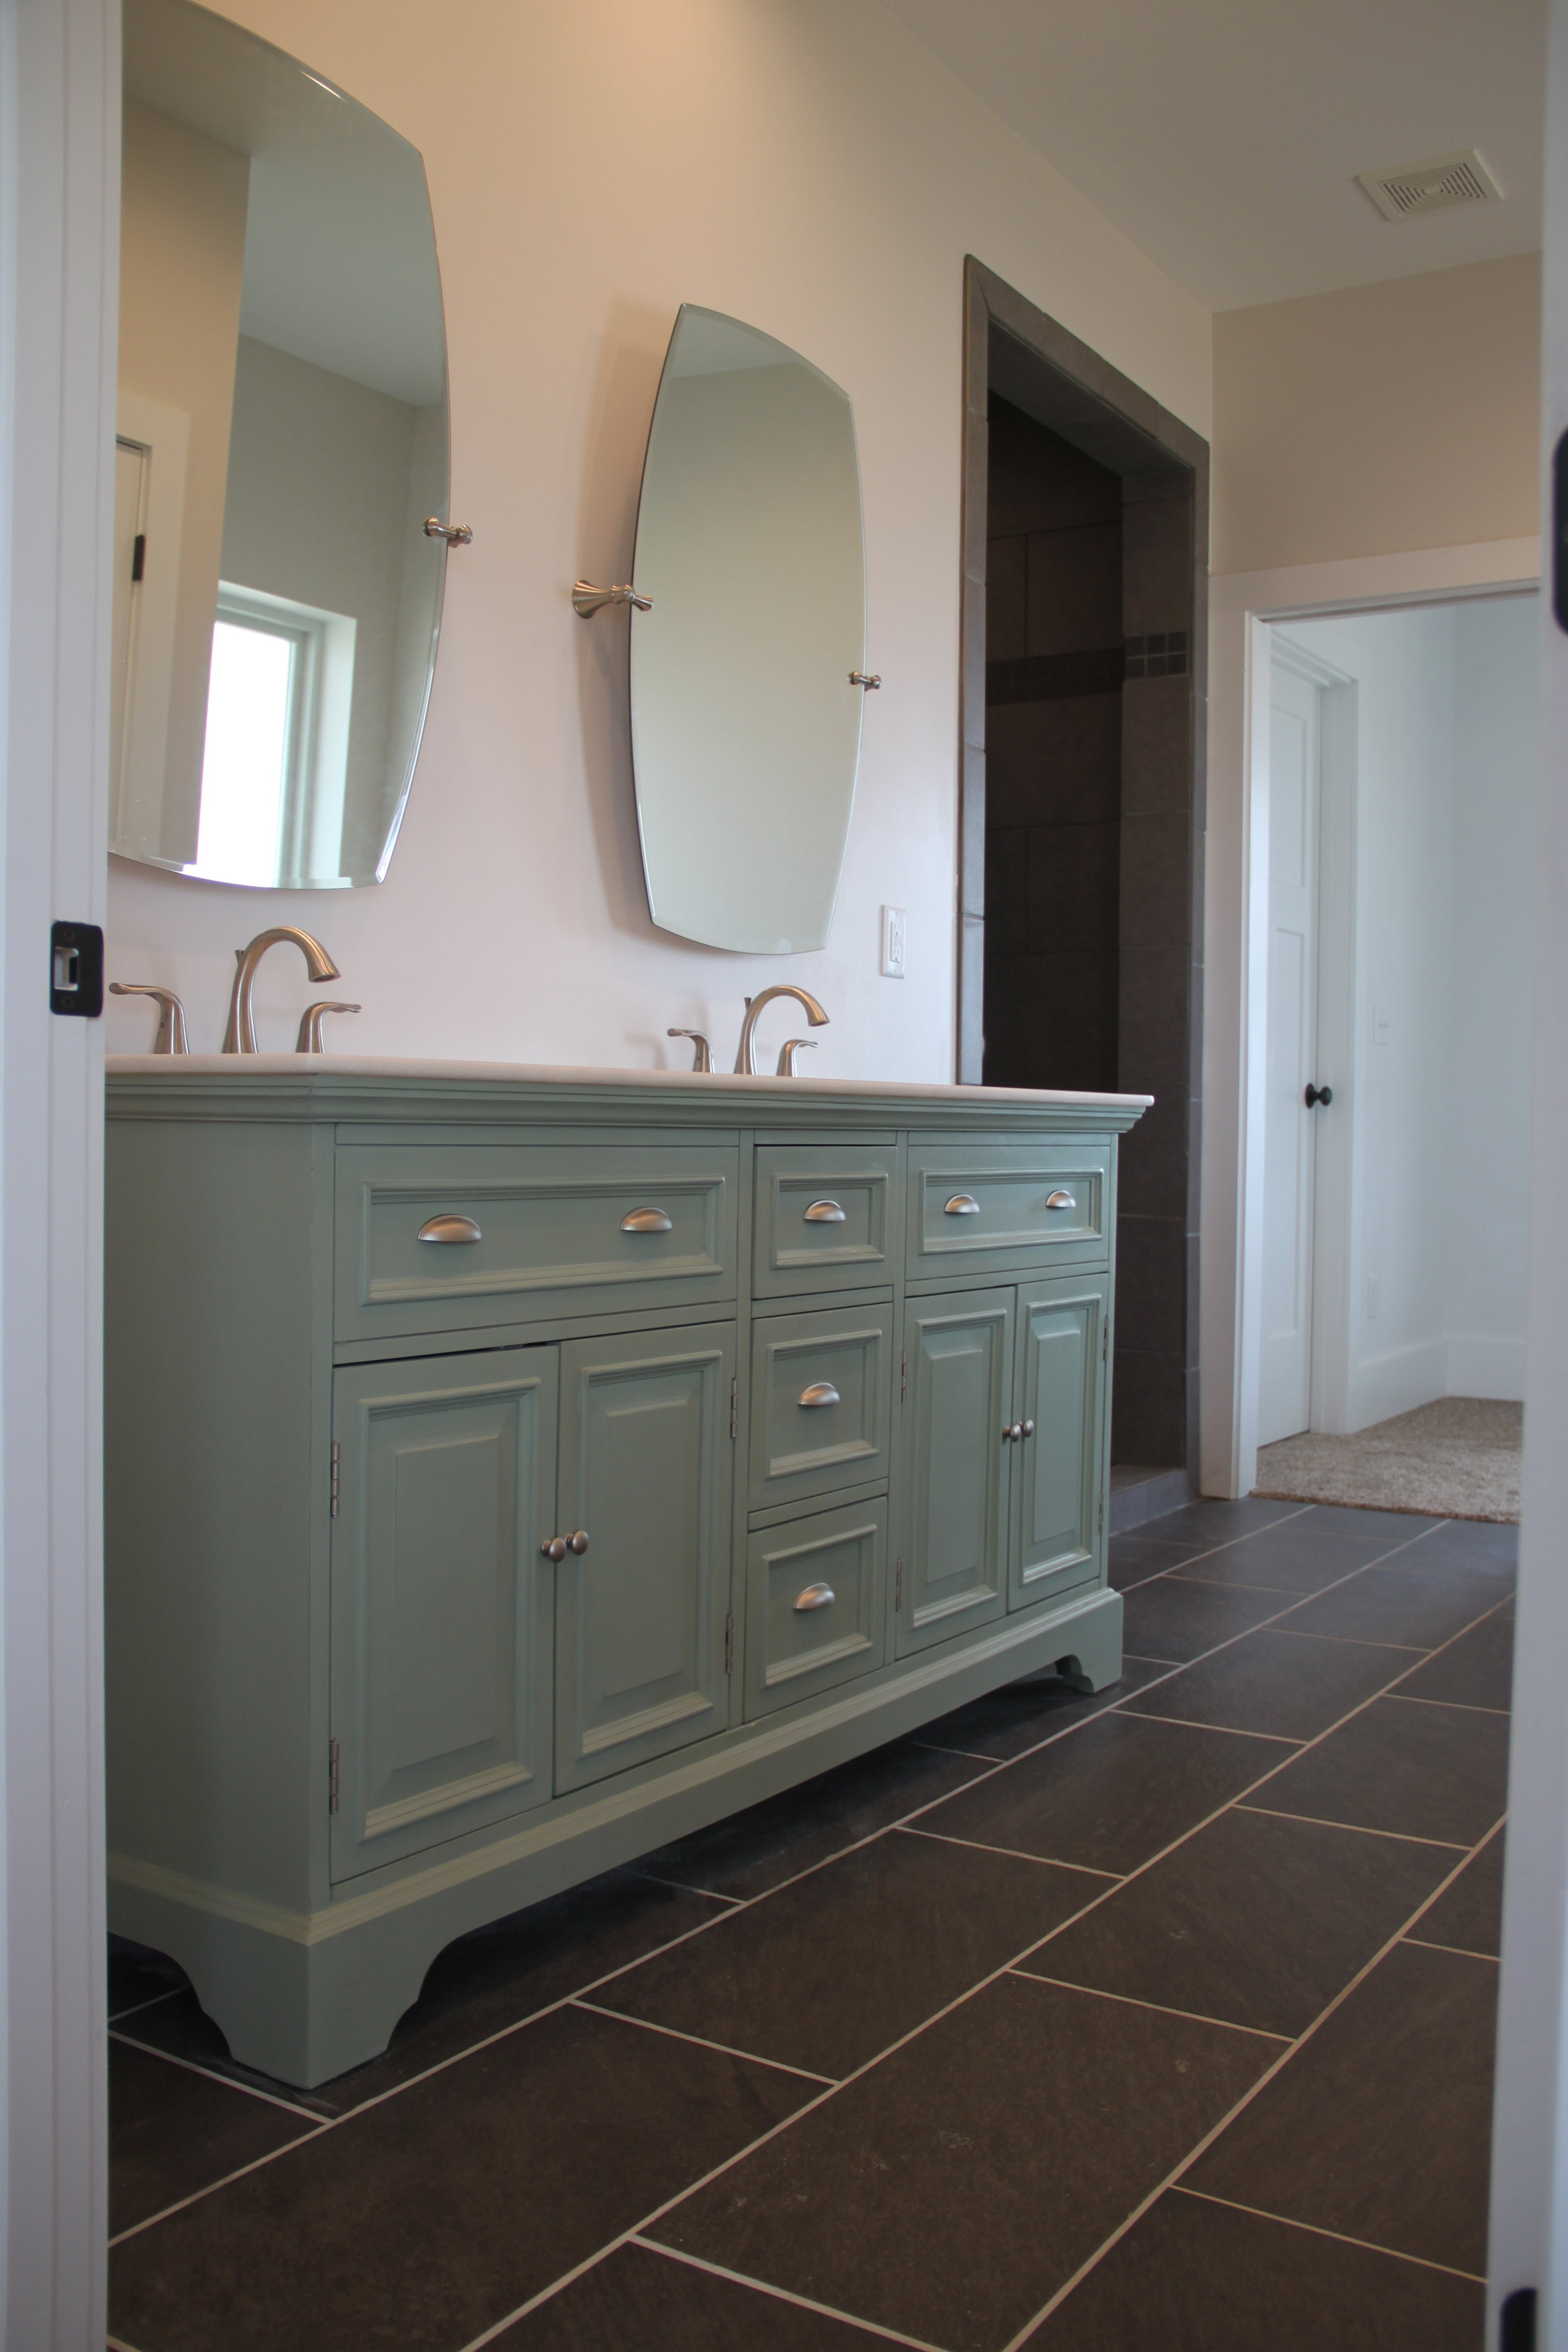 The Master Bath has a soaker tub and a shower with multiple shower heads. The beautiful charcoal tile is accented with the mint green double vanity.